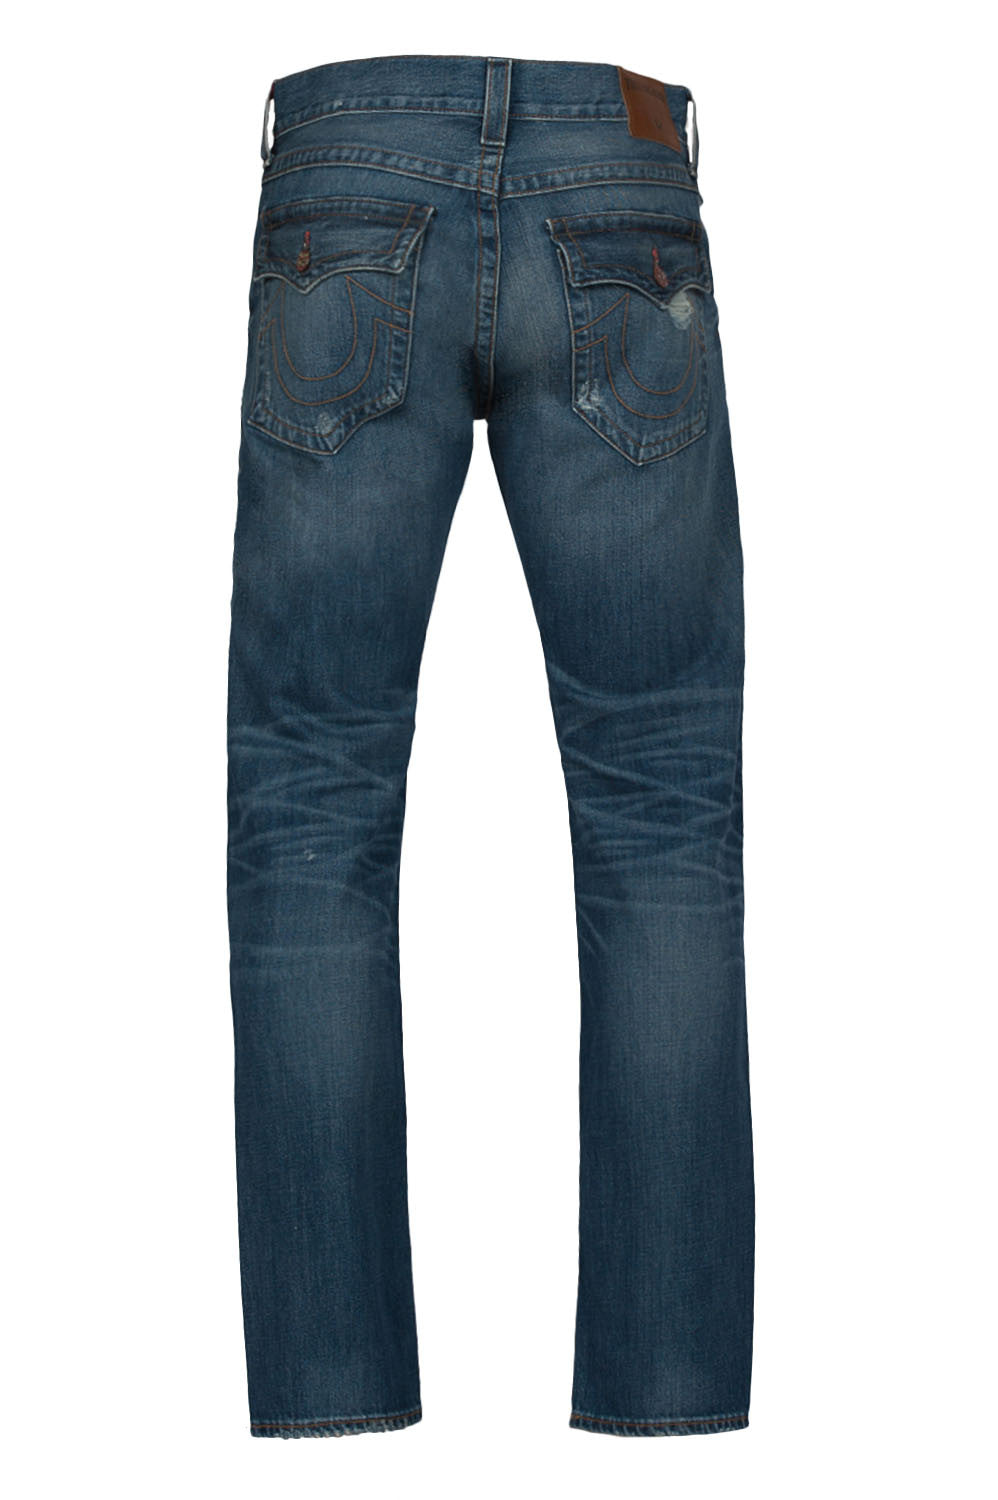 a64212483 True Religion Geno Flap Ripped Denim